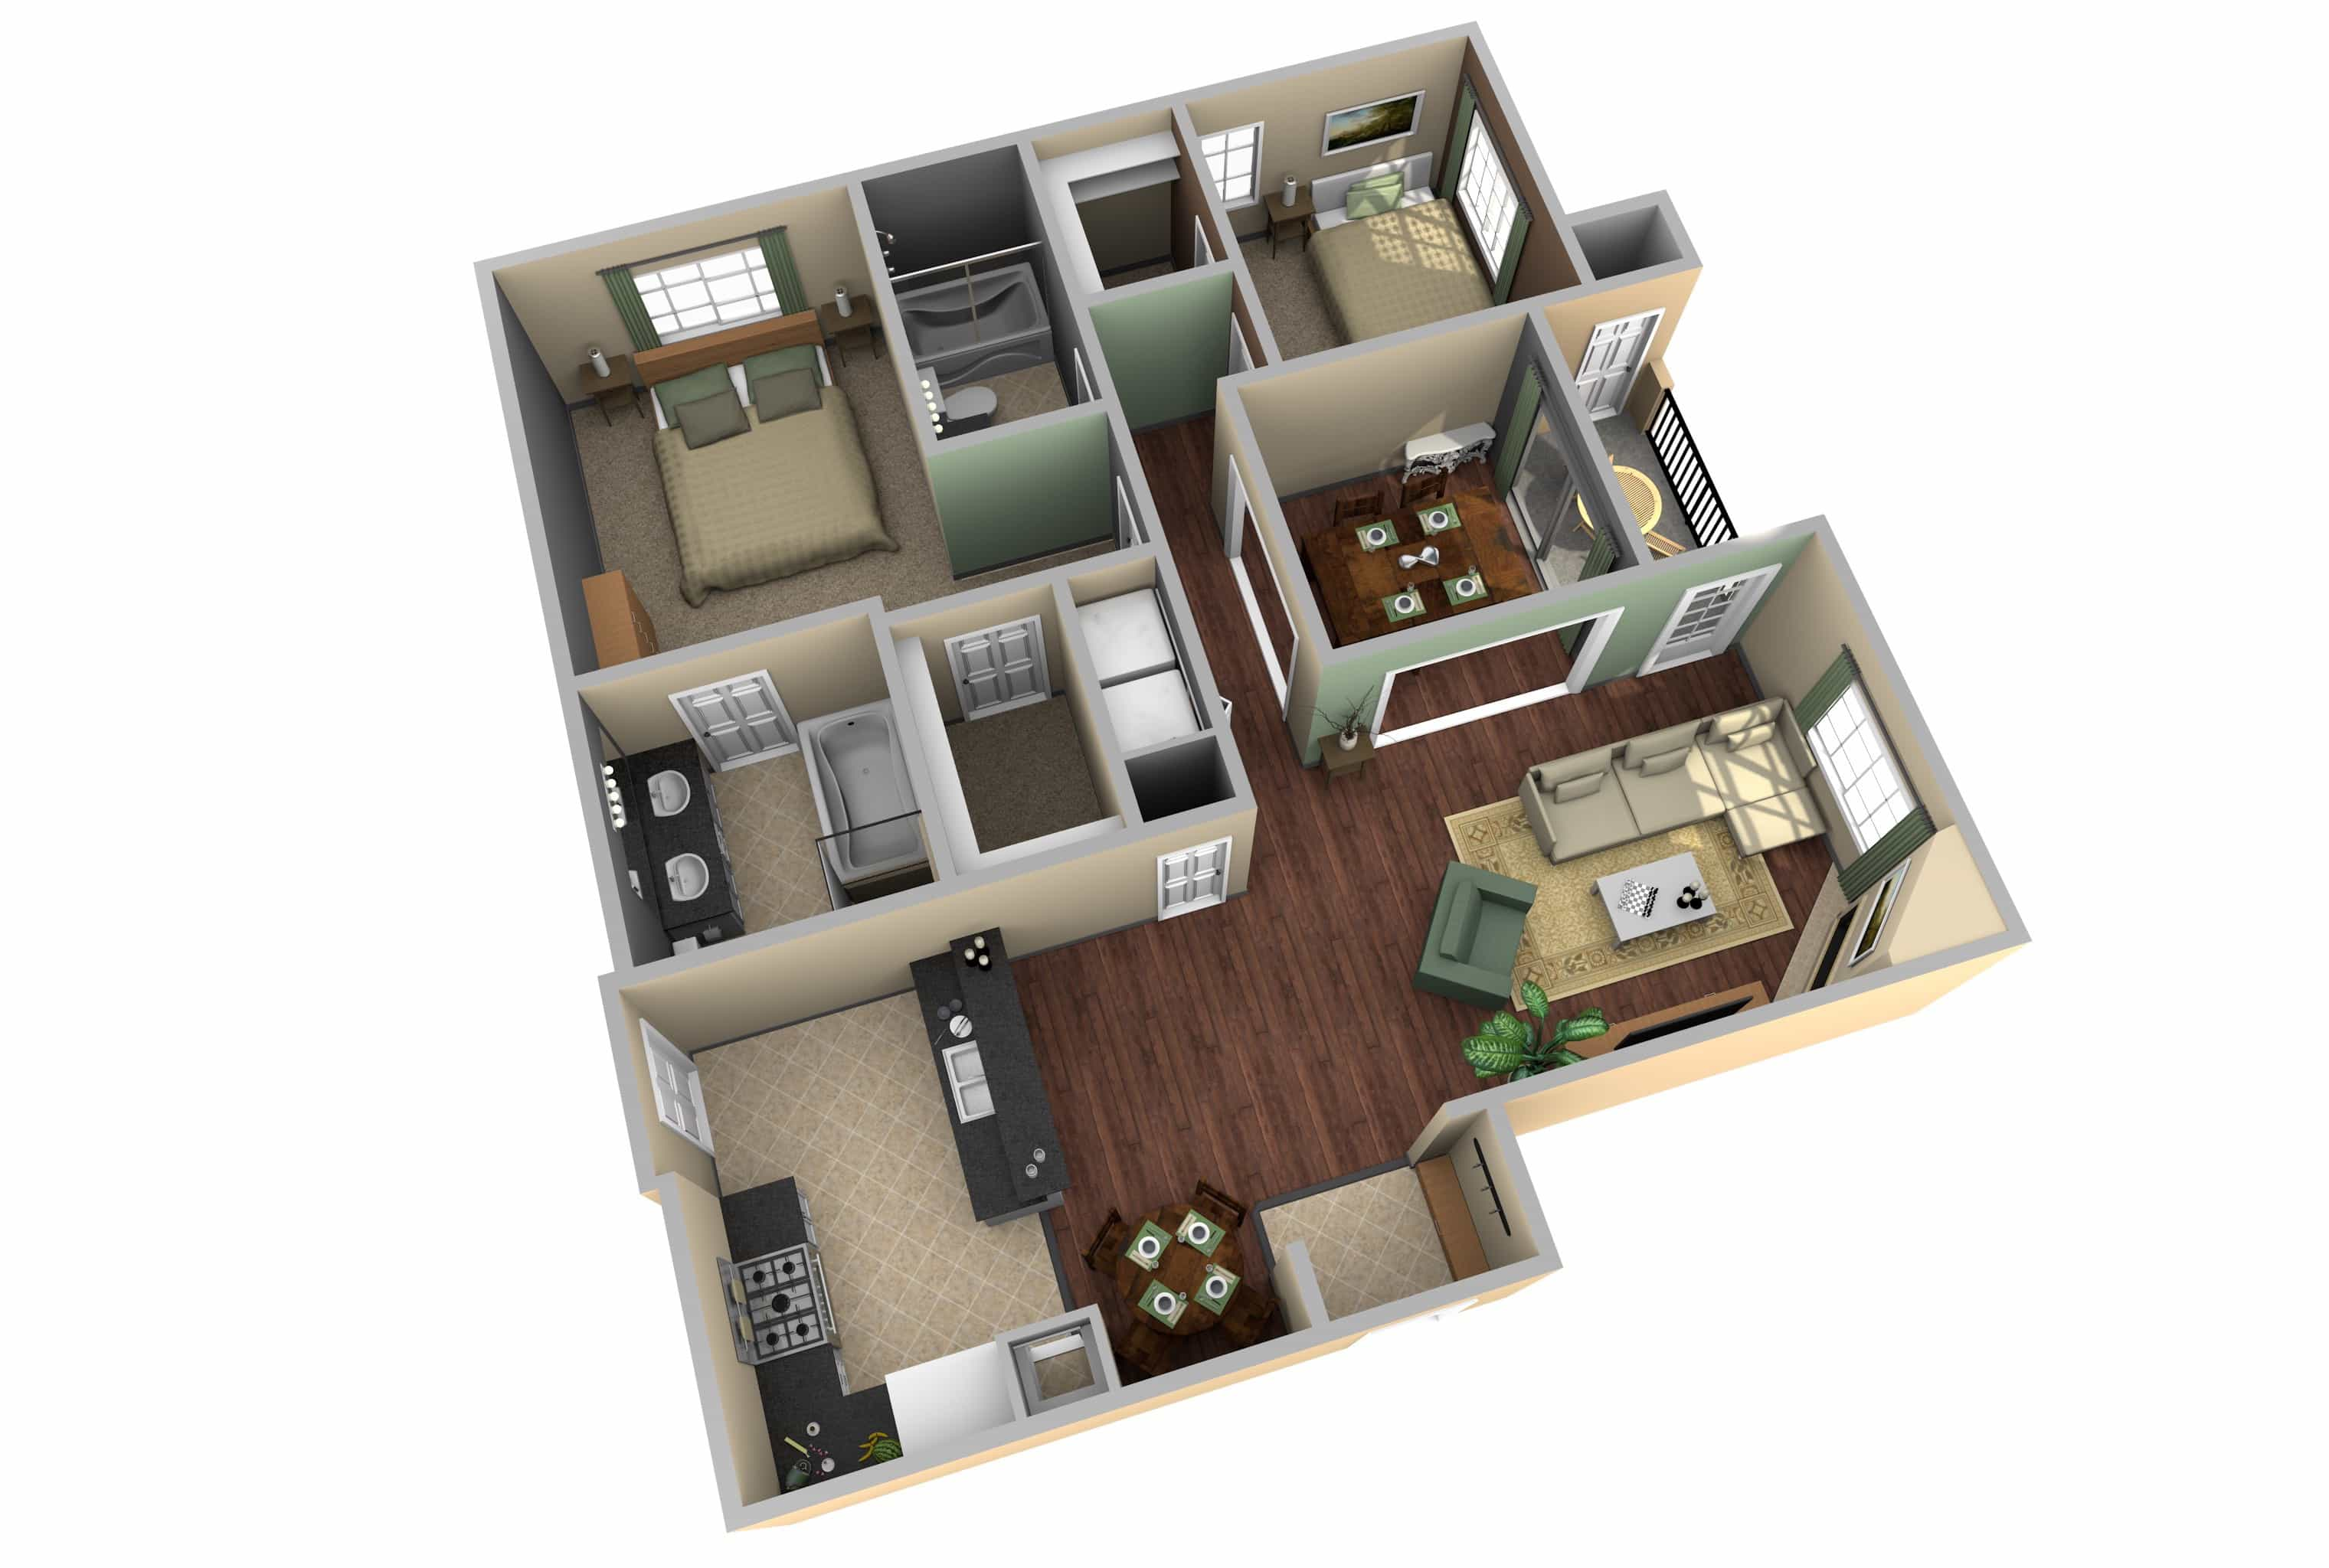 Modern House Floor Plans 3D Layout With 2 Bedroom (Image 12 of 17)